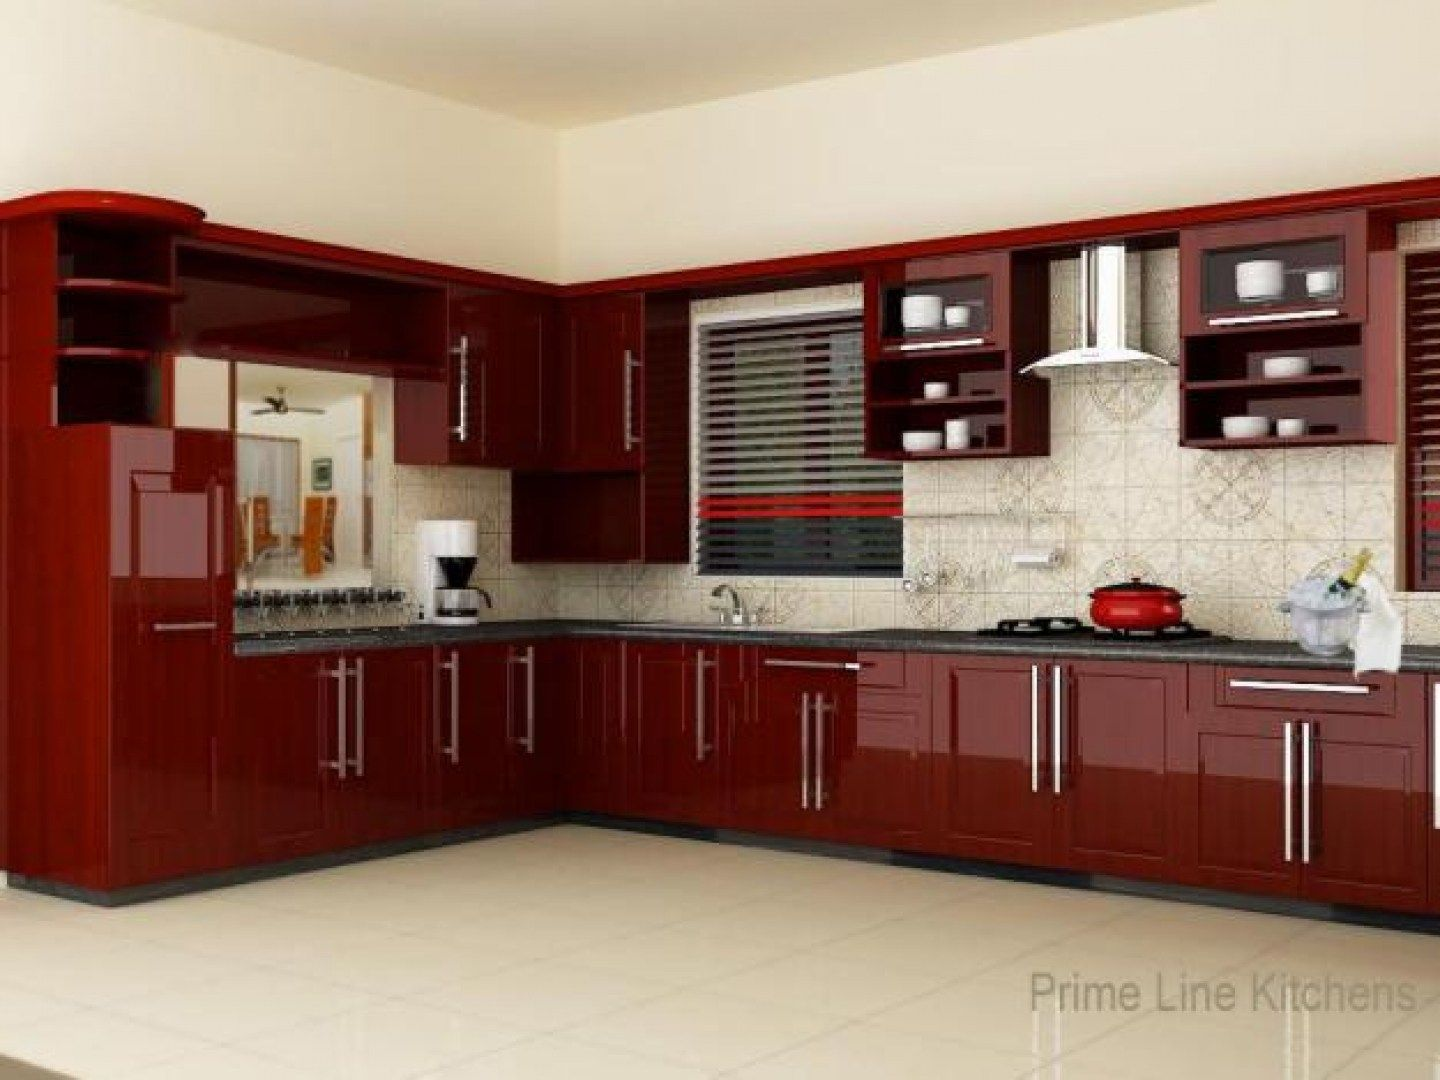 easy kitchen design software free download cabinets door handles ideas woodwork designs hyderabad